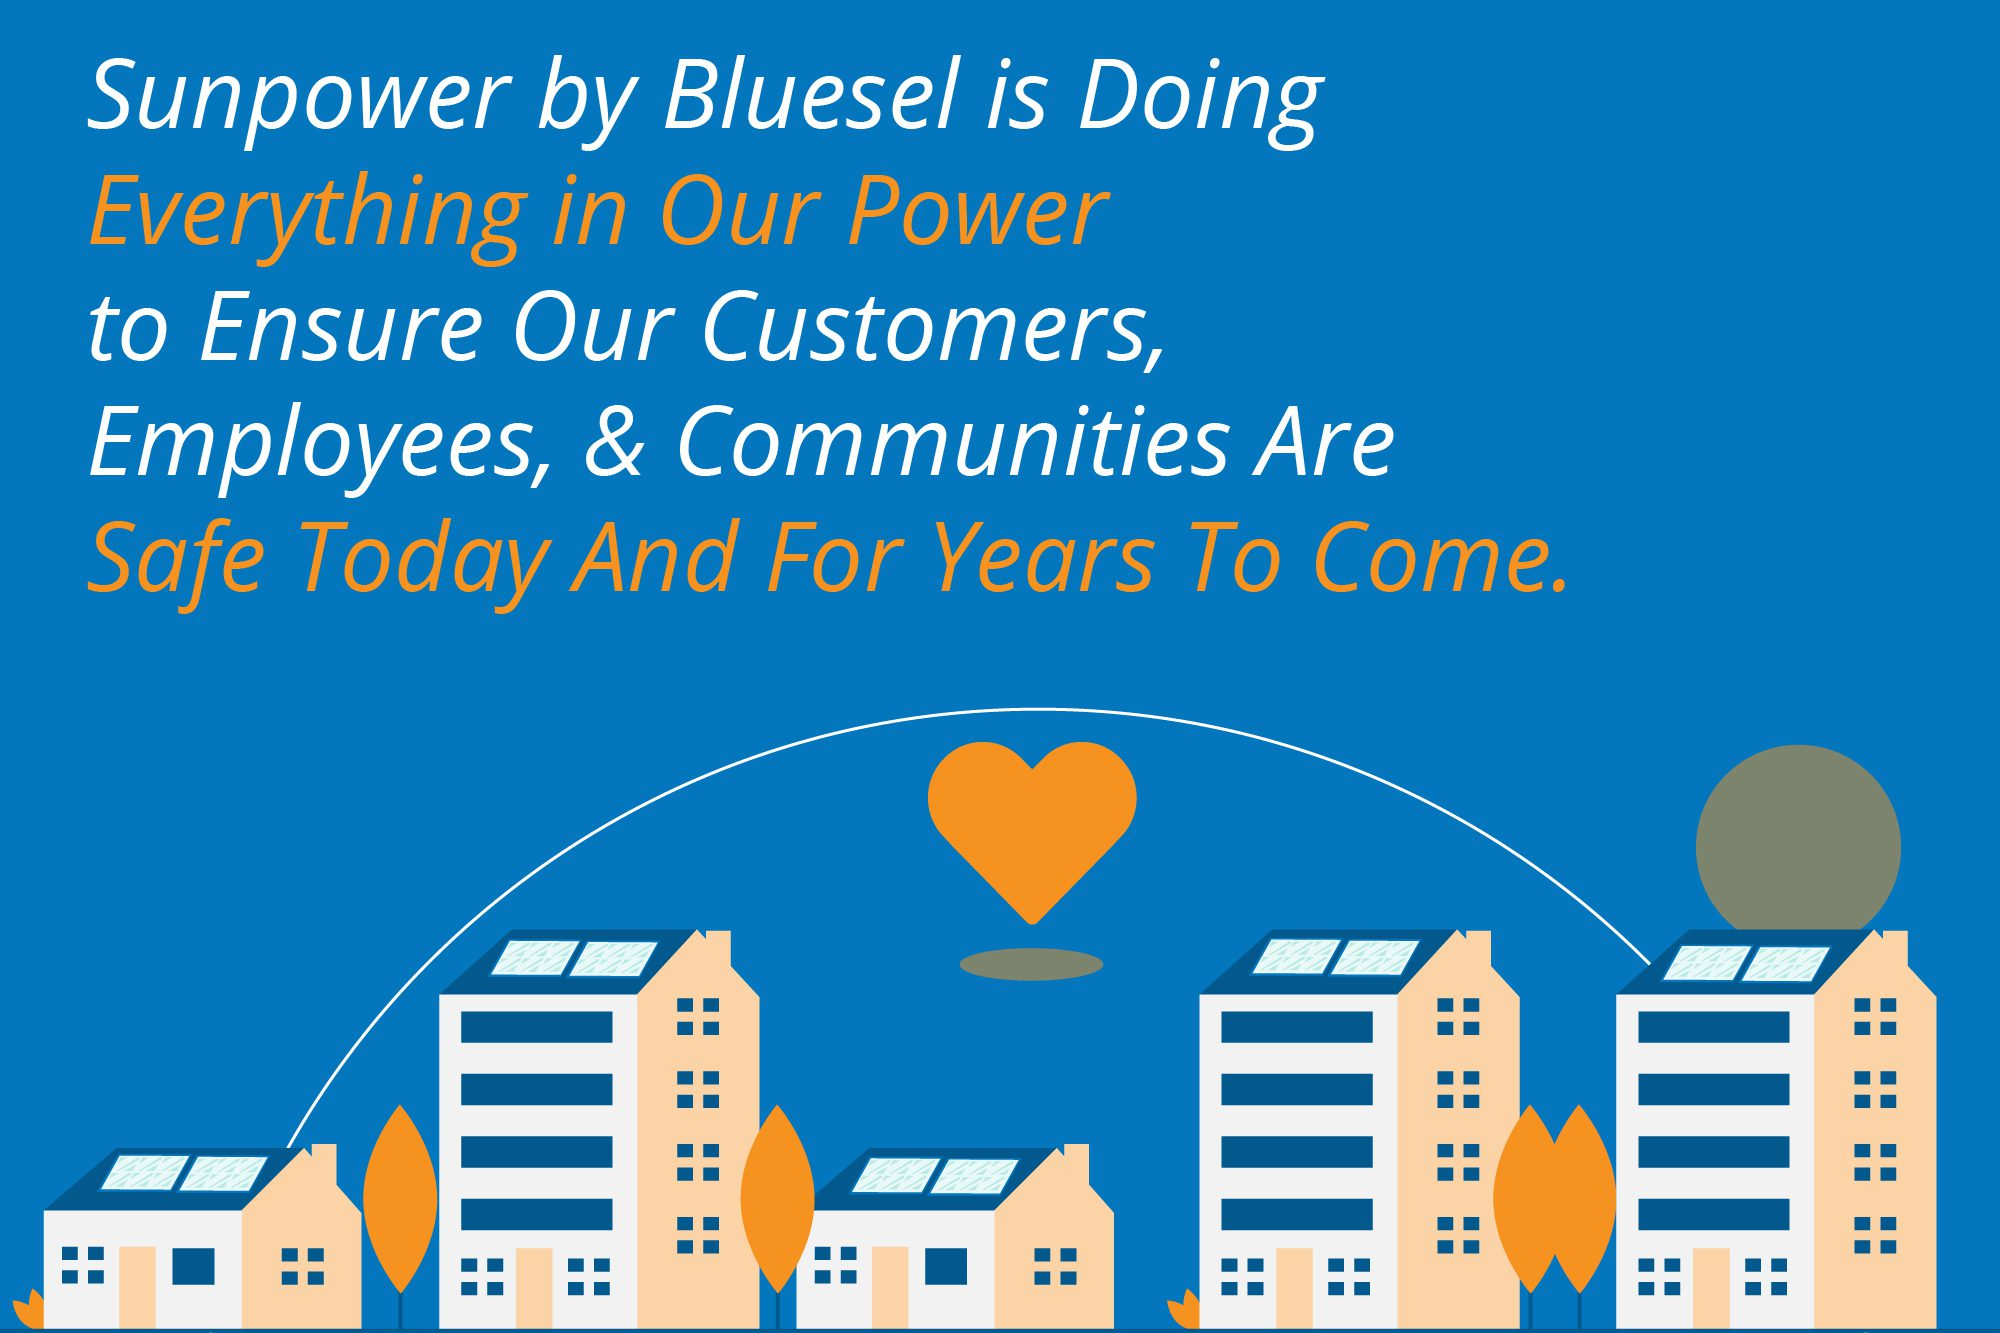 Bluesel values the health and safety of employees and customers